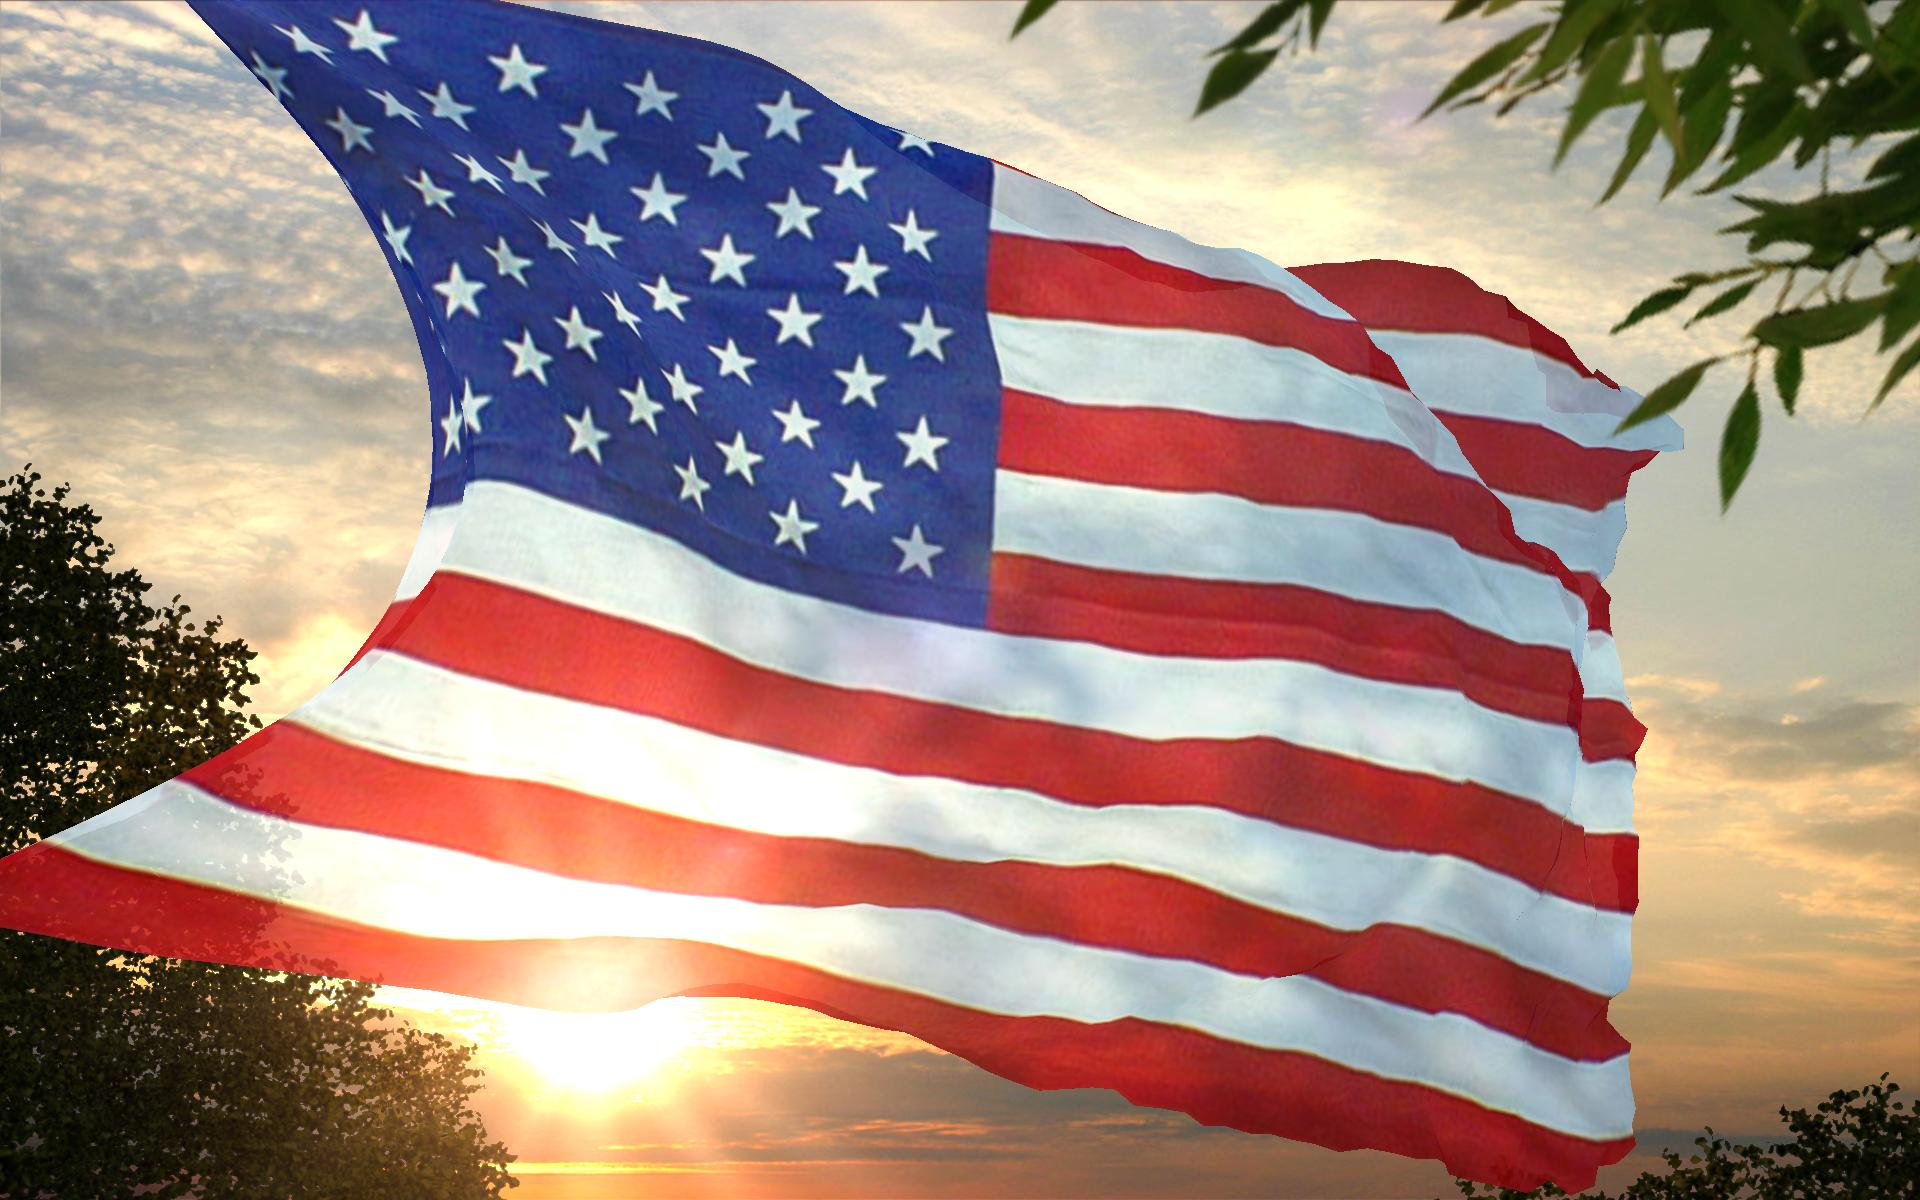 Related Wallpaper for USA American Flag Wallpaper 1920x1200